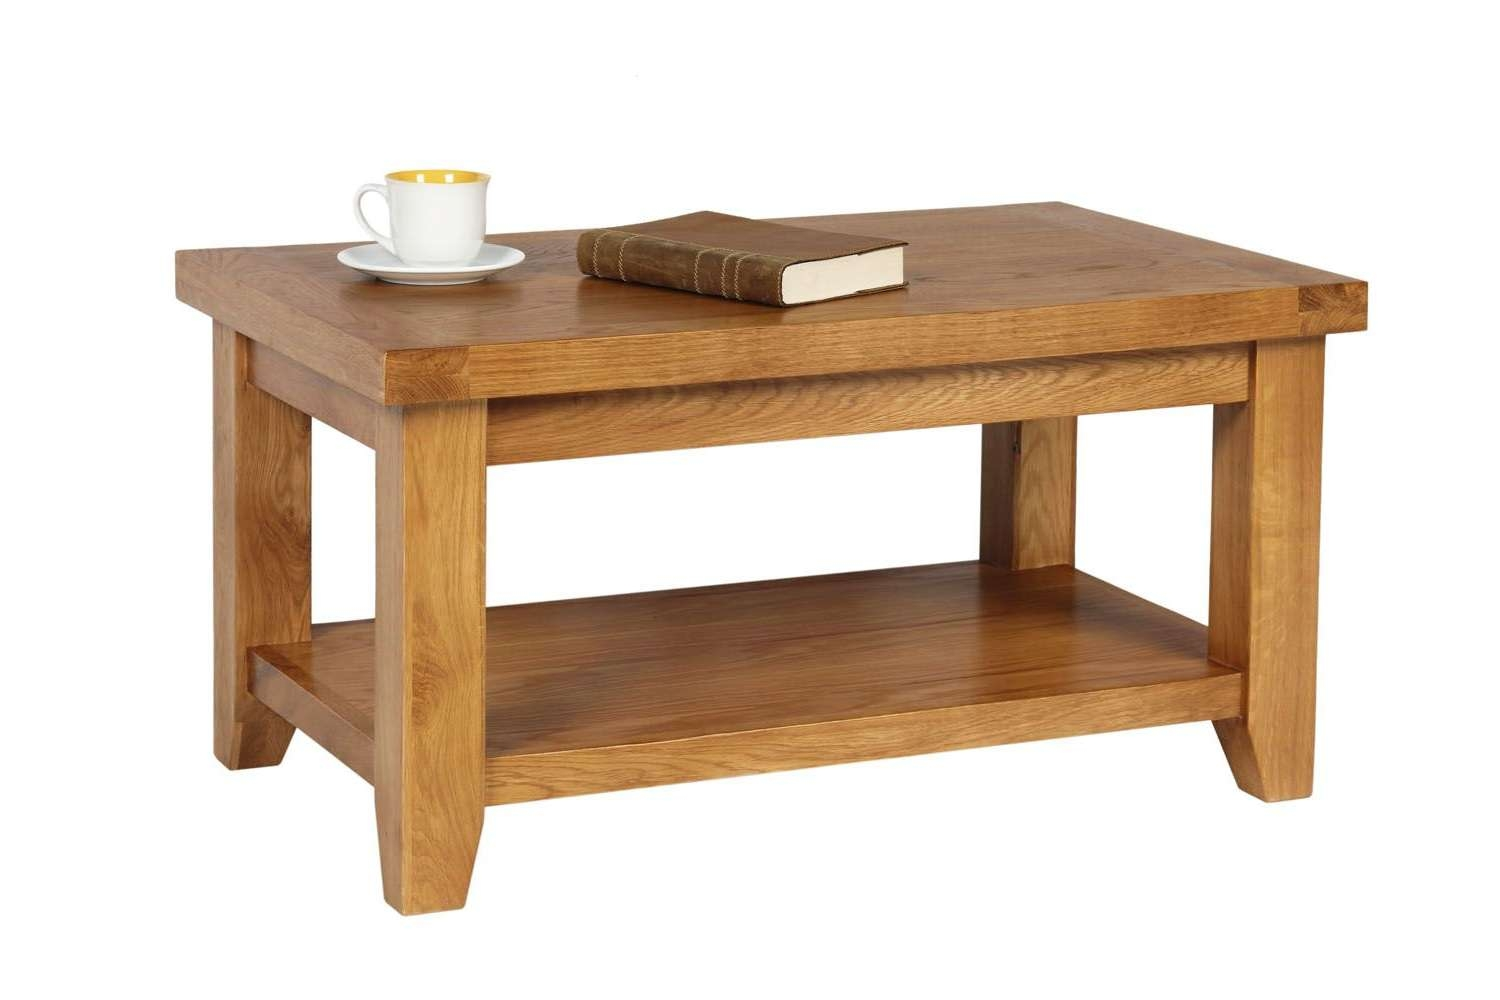 Trendy Oak Coffee Table With Shelf With Country Oak Coffee Table With Shelf (View 20 of 20)